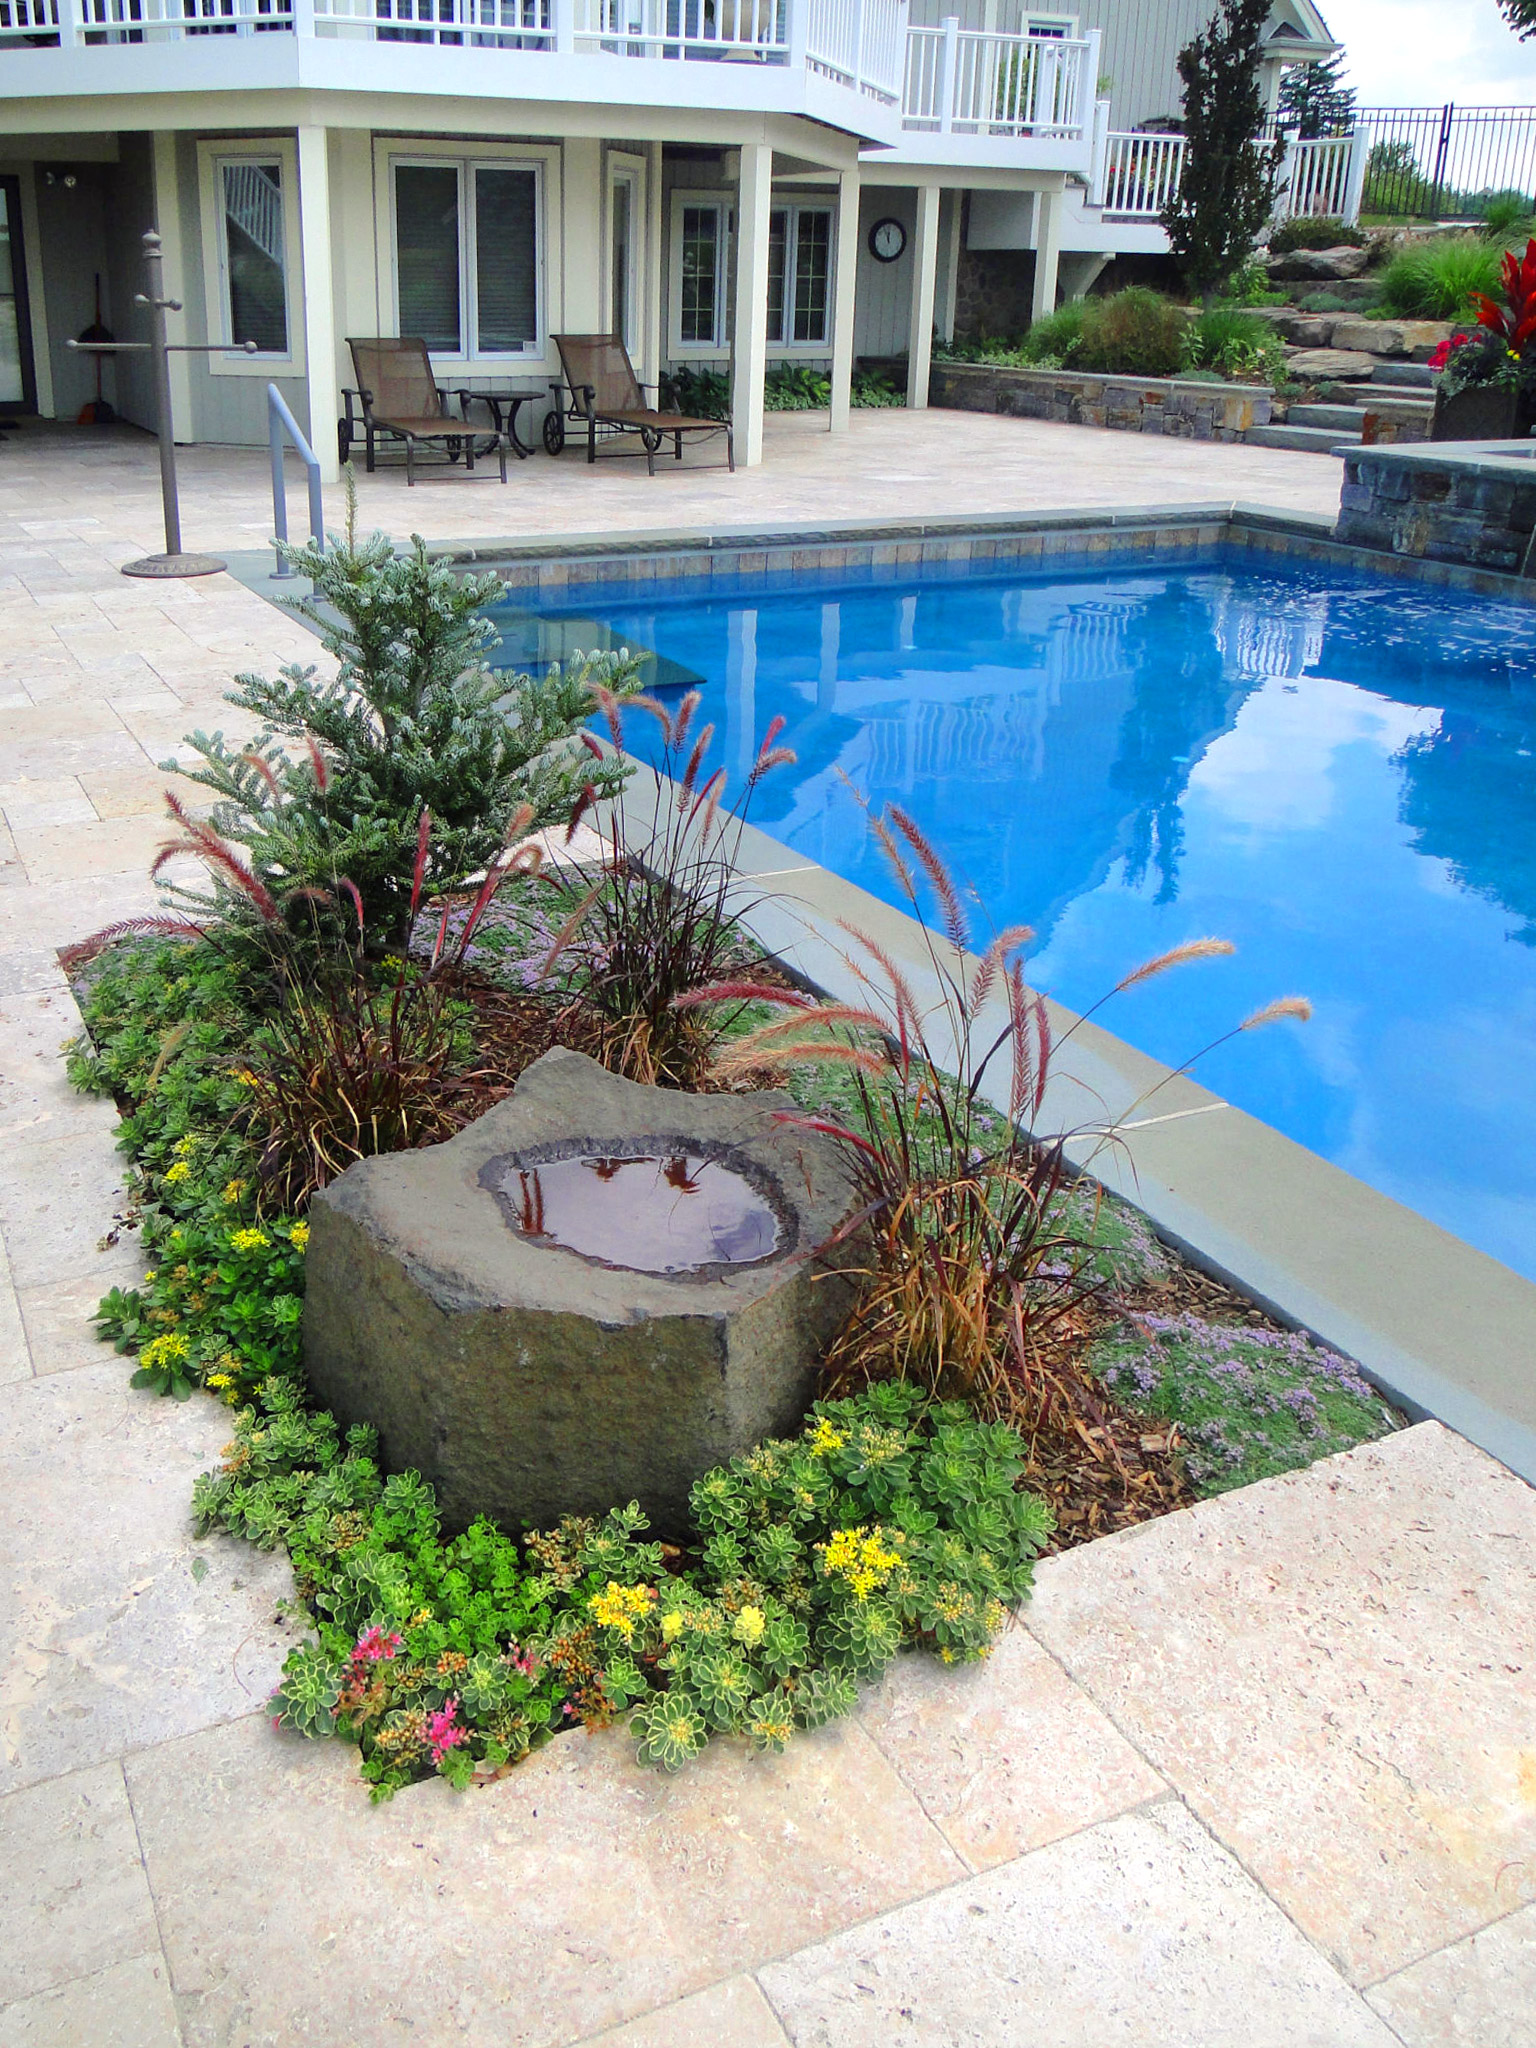 Vintage travertine pavers and full range thermal bluestone coping on this poolside are enhanced by a small garden display